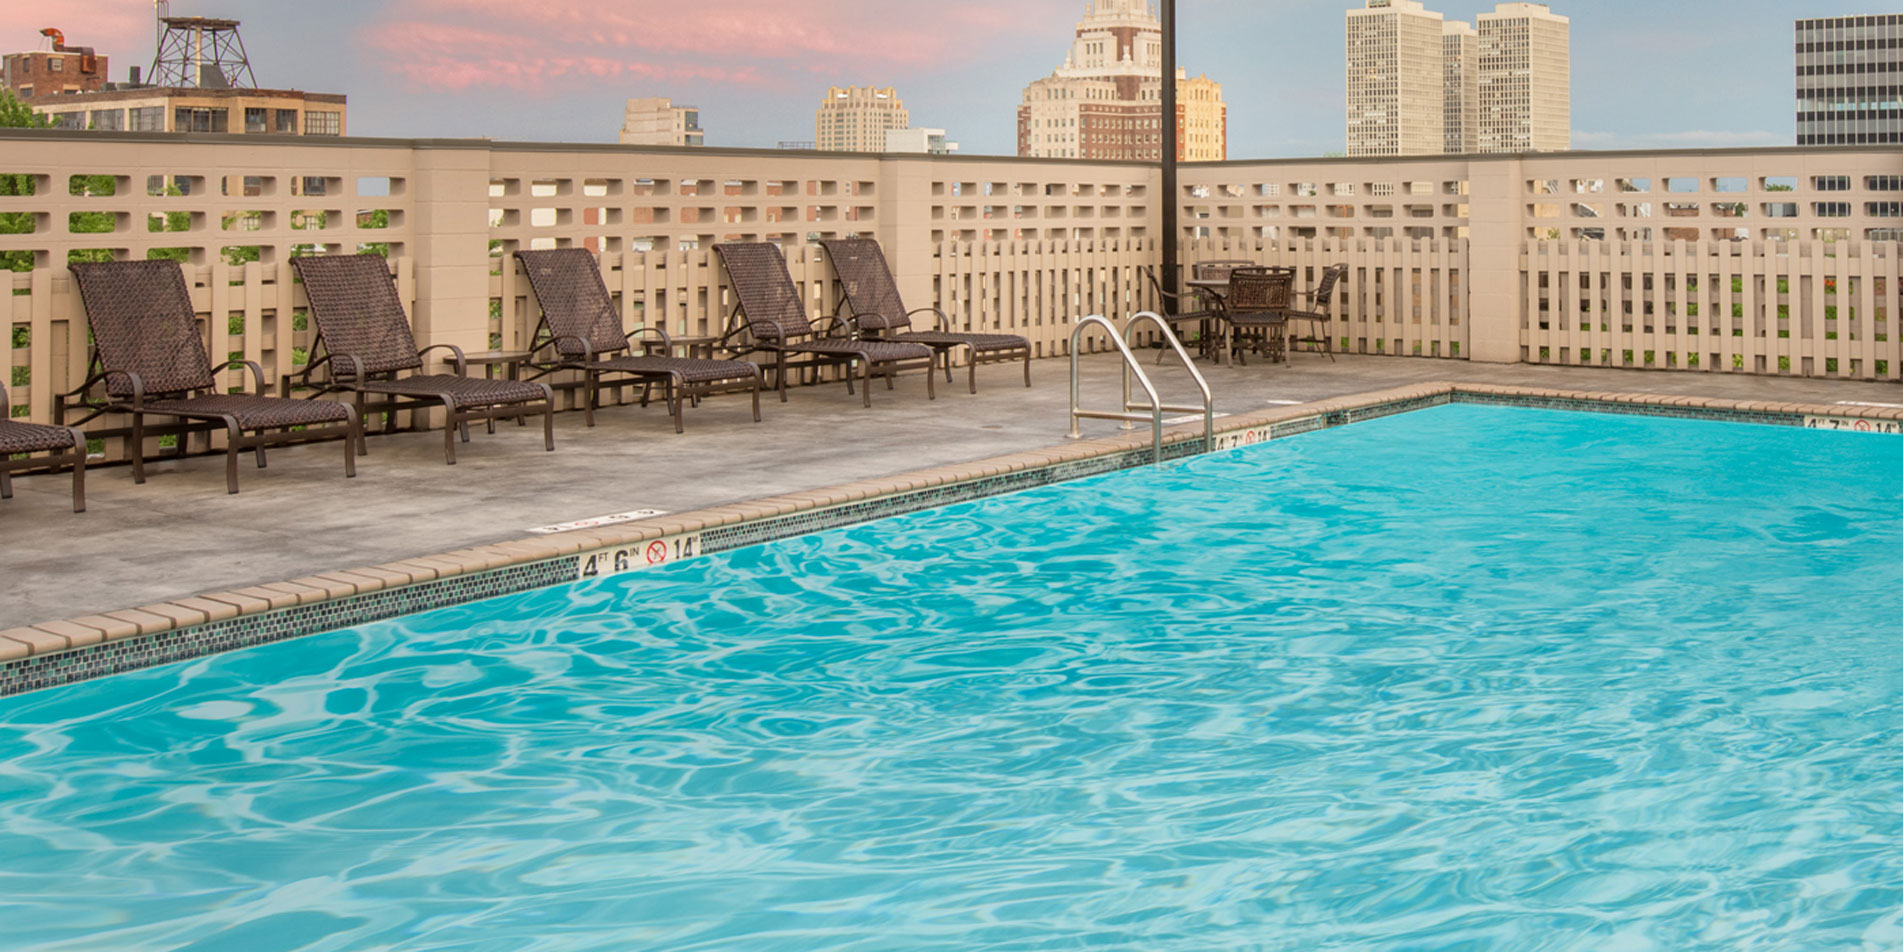 Wyndham Philadelphia Rooftop Pool